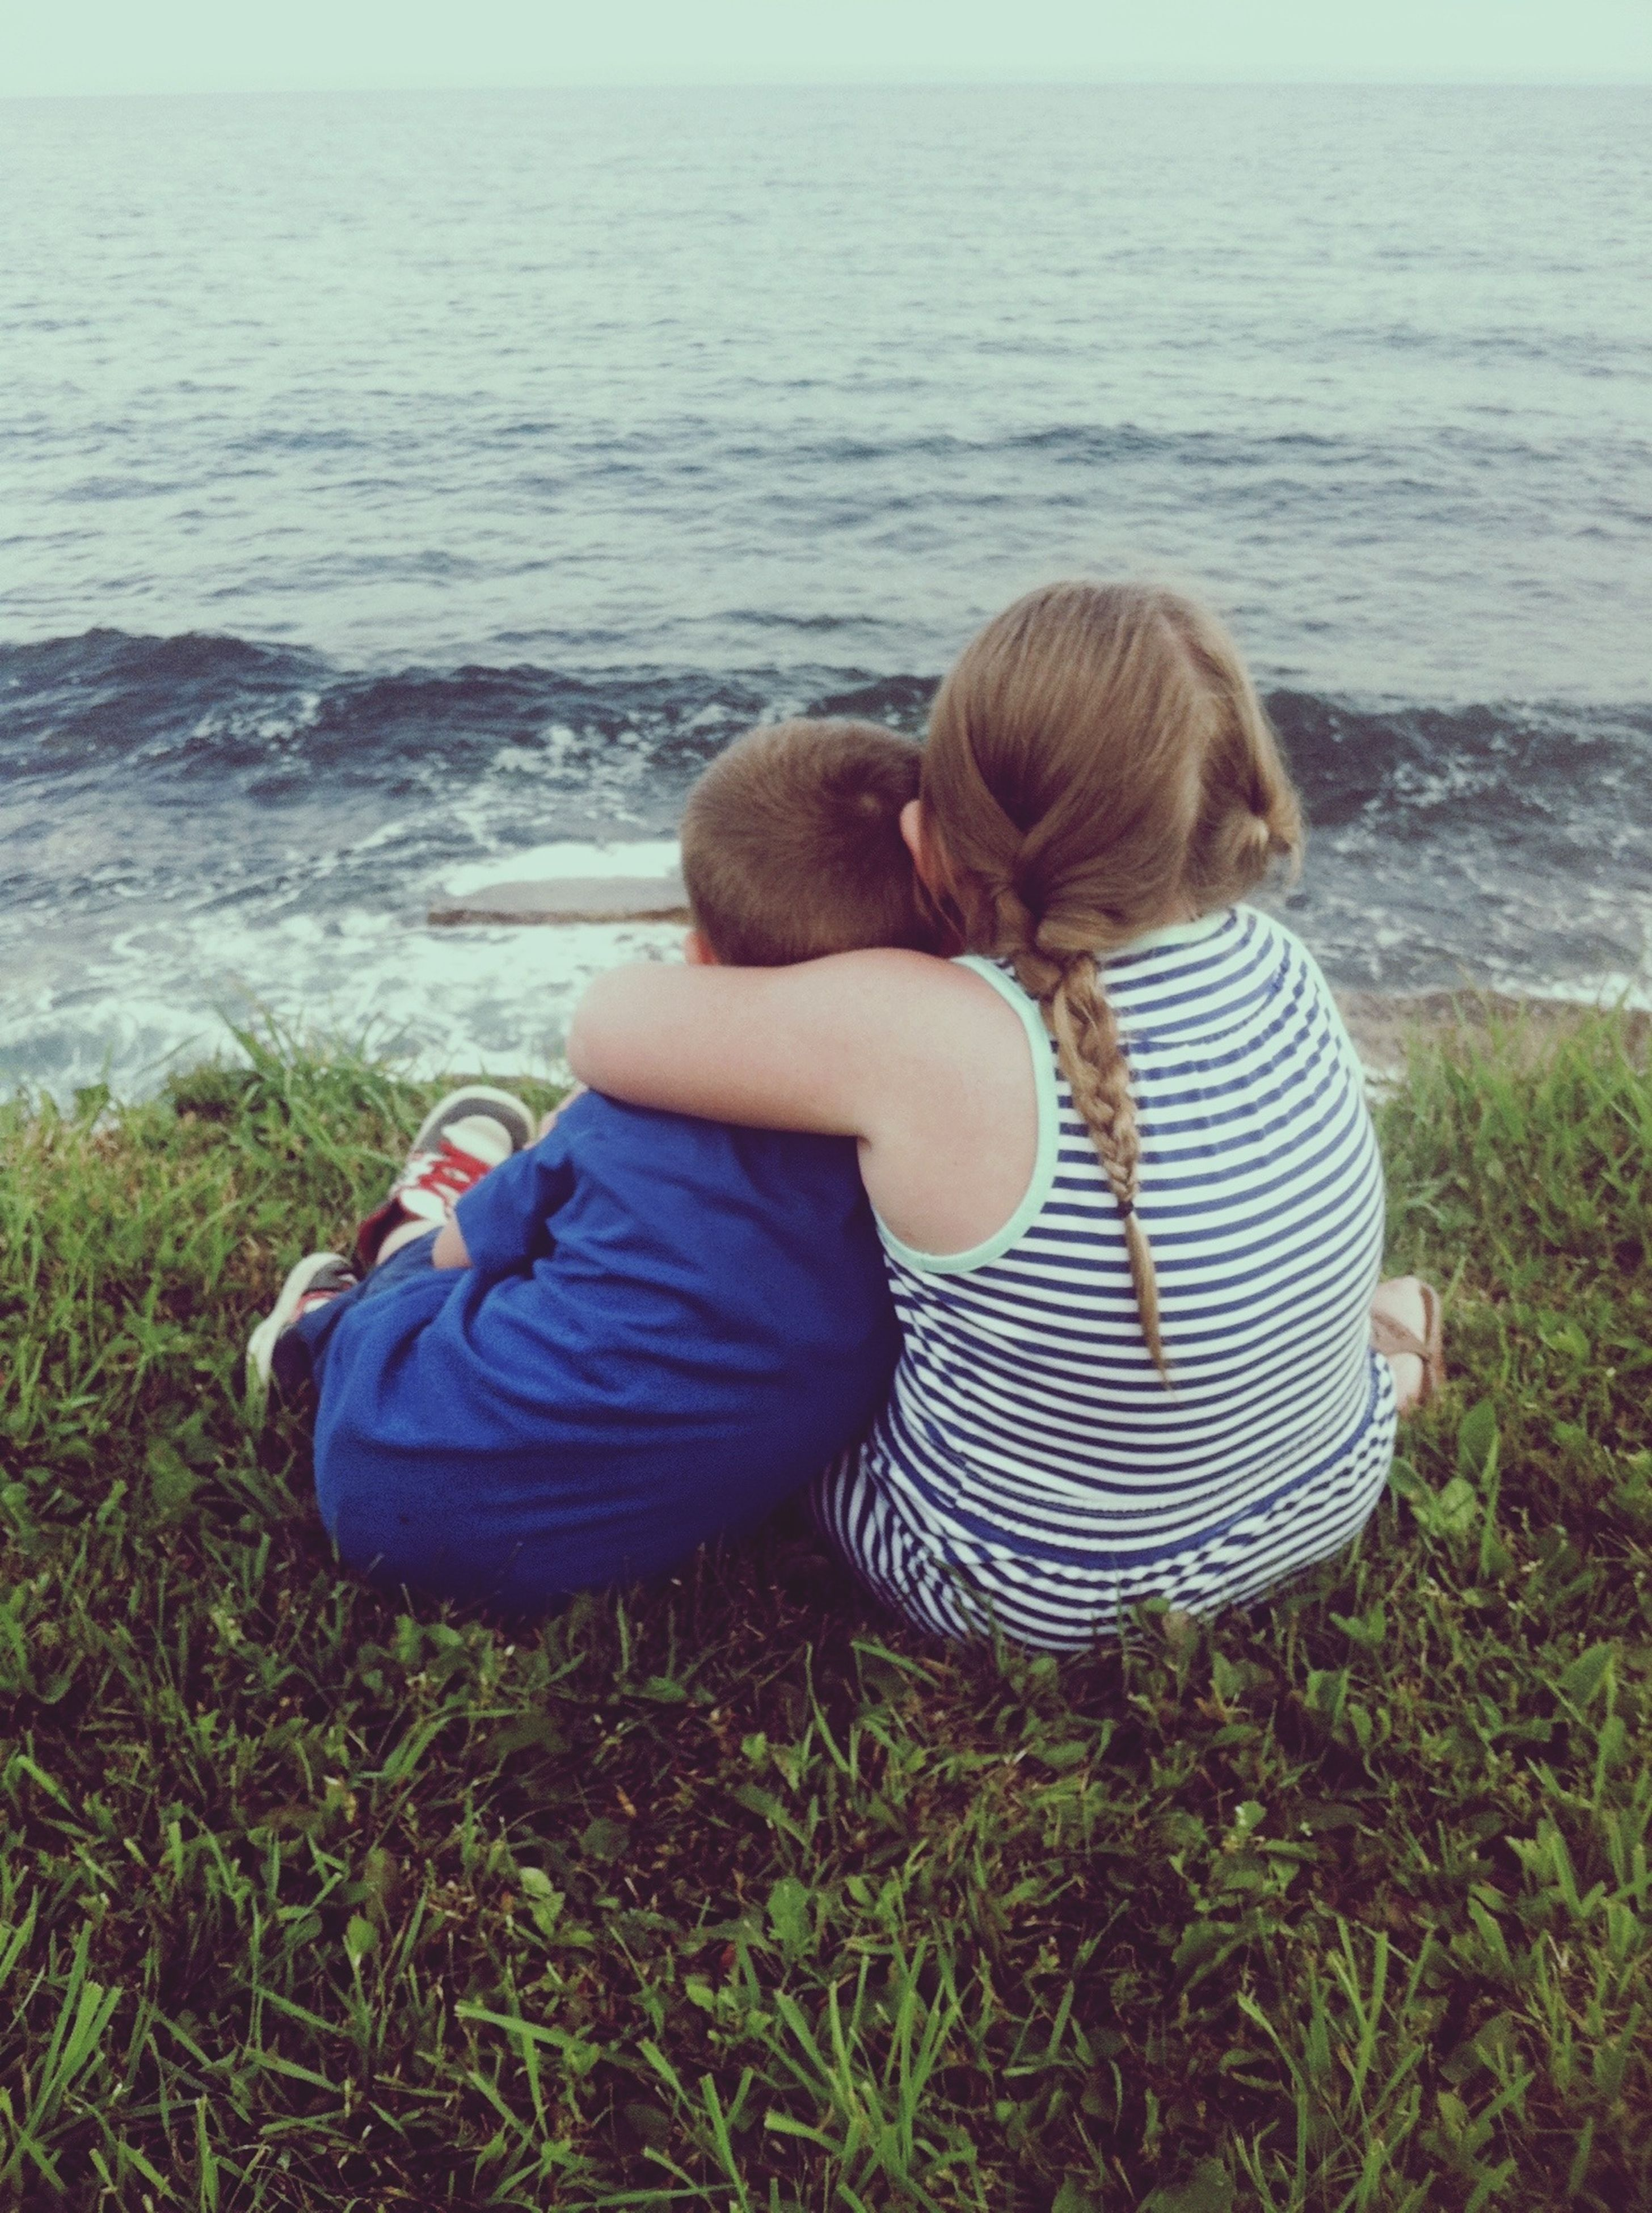 childhood, water, leisure activity, sea, lifestyles, rear view, elementary age, casual clothing, girls, full length, grass, sitting, relaxation, boys, innocence, beach, person, shore